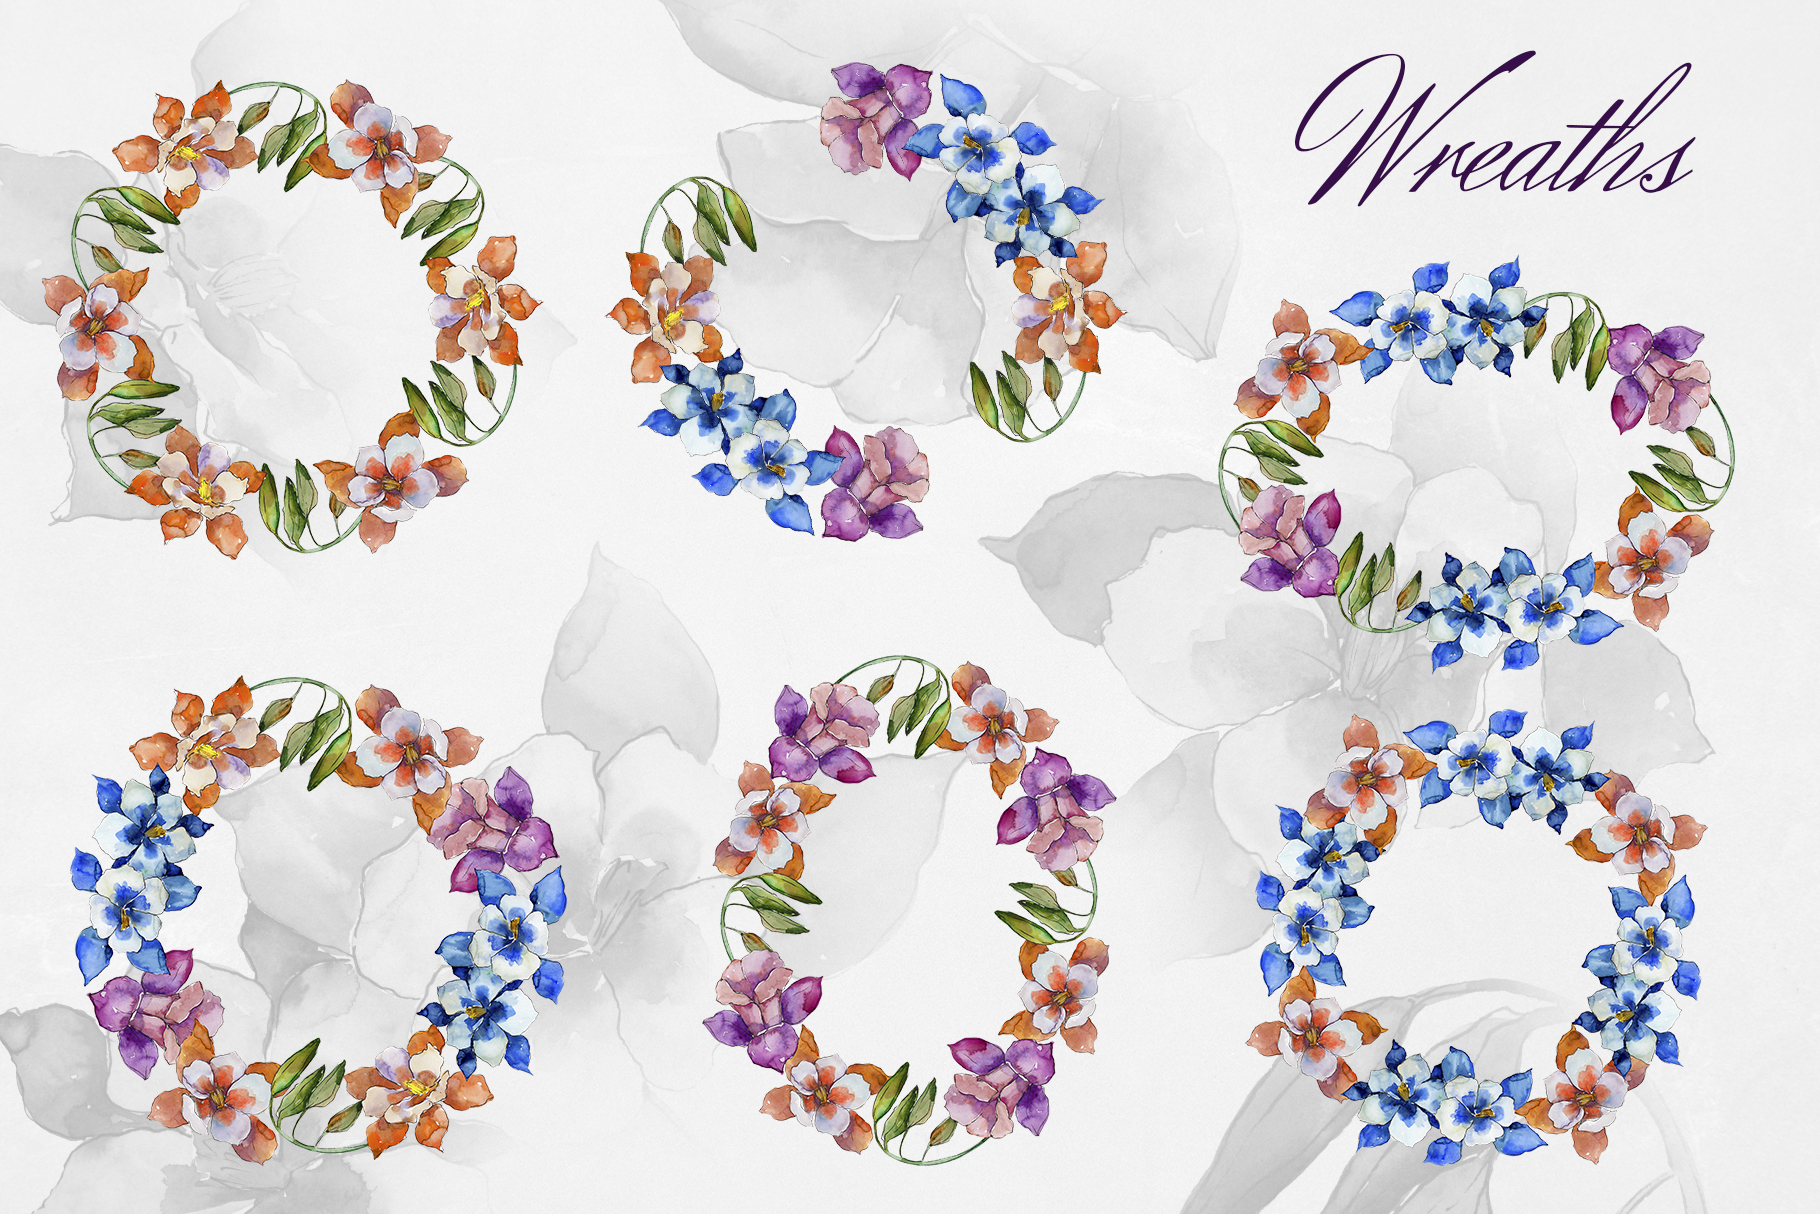 Aquilegia flowers velvet season watercolor png PNG example image 3